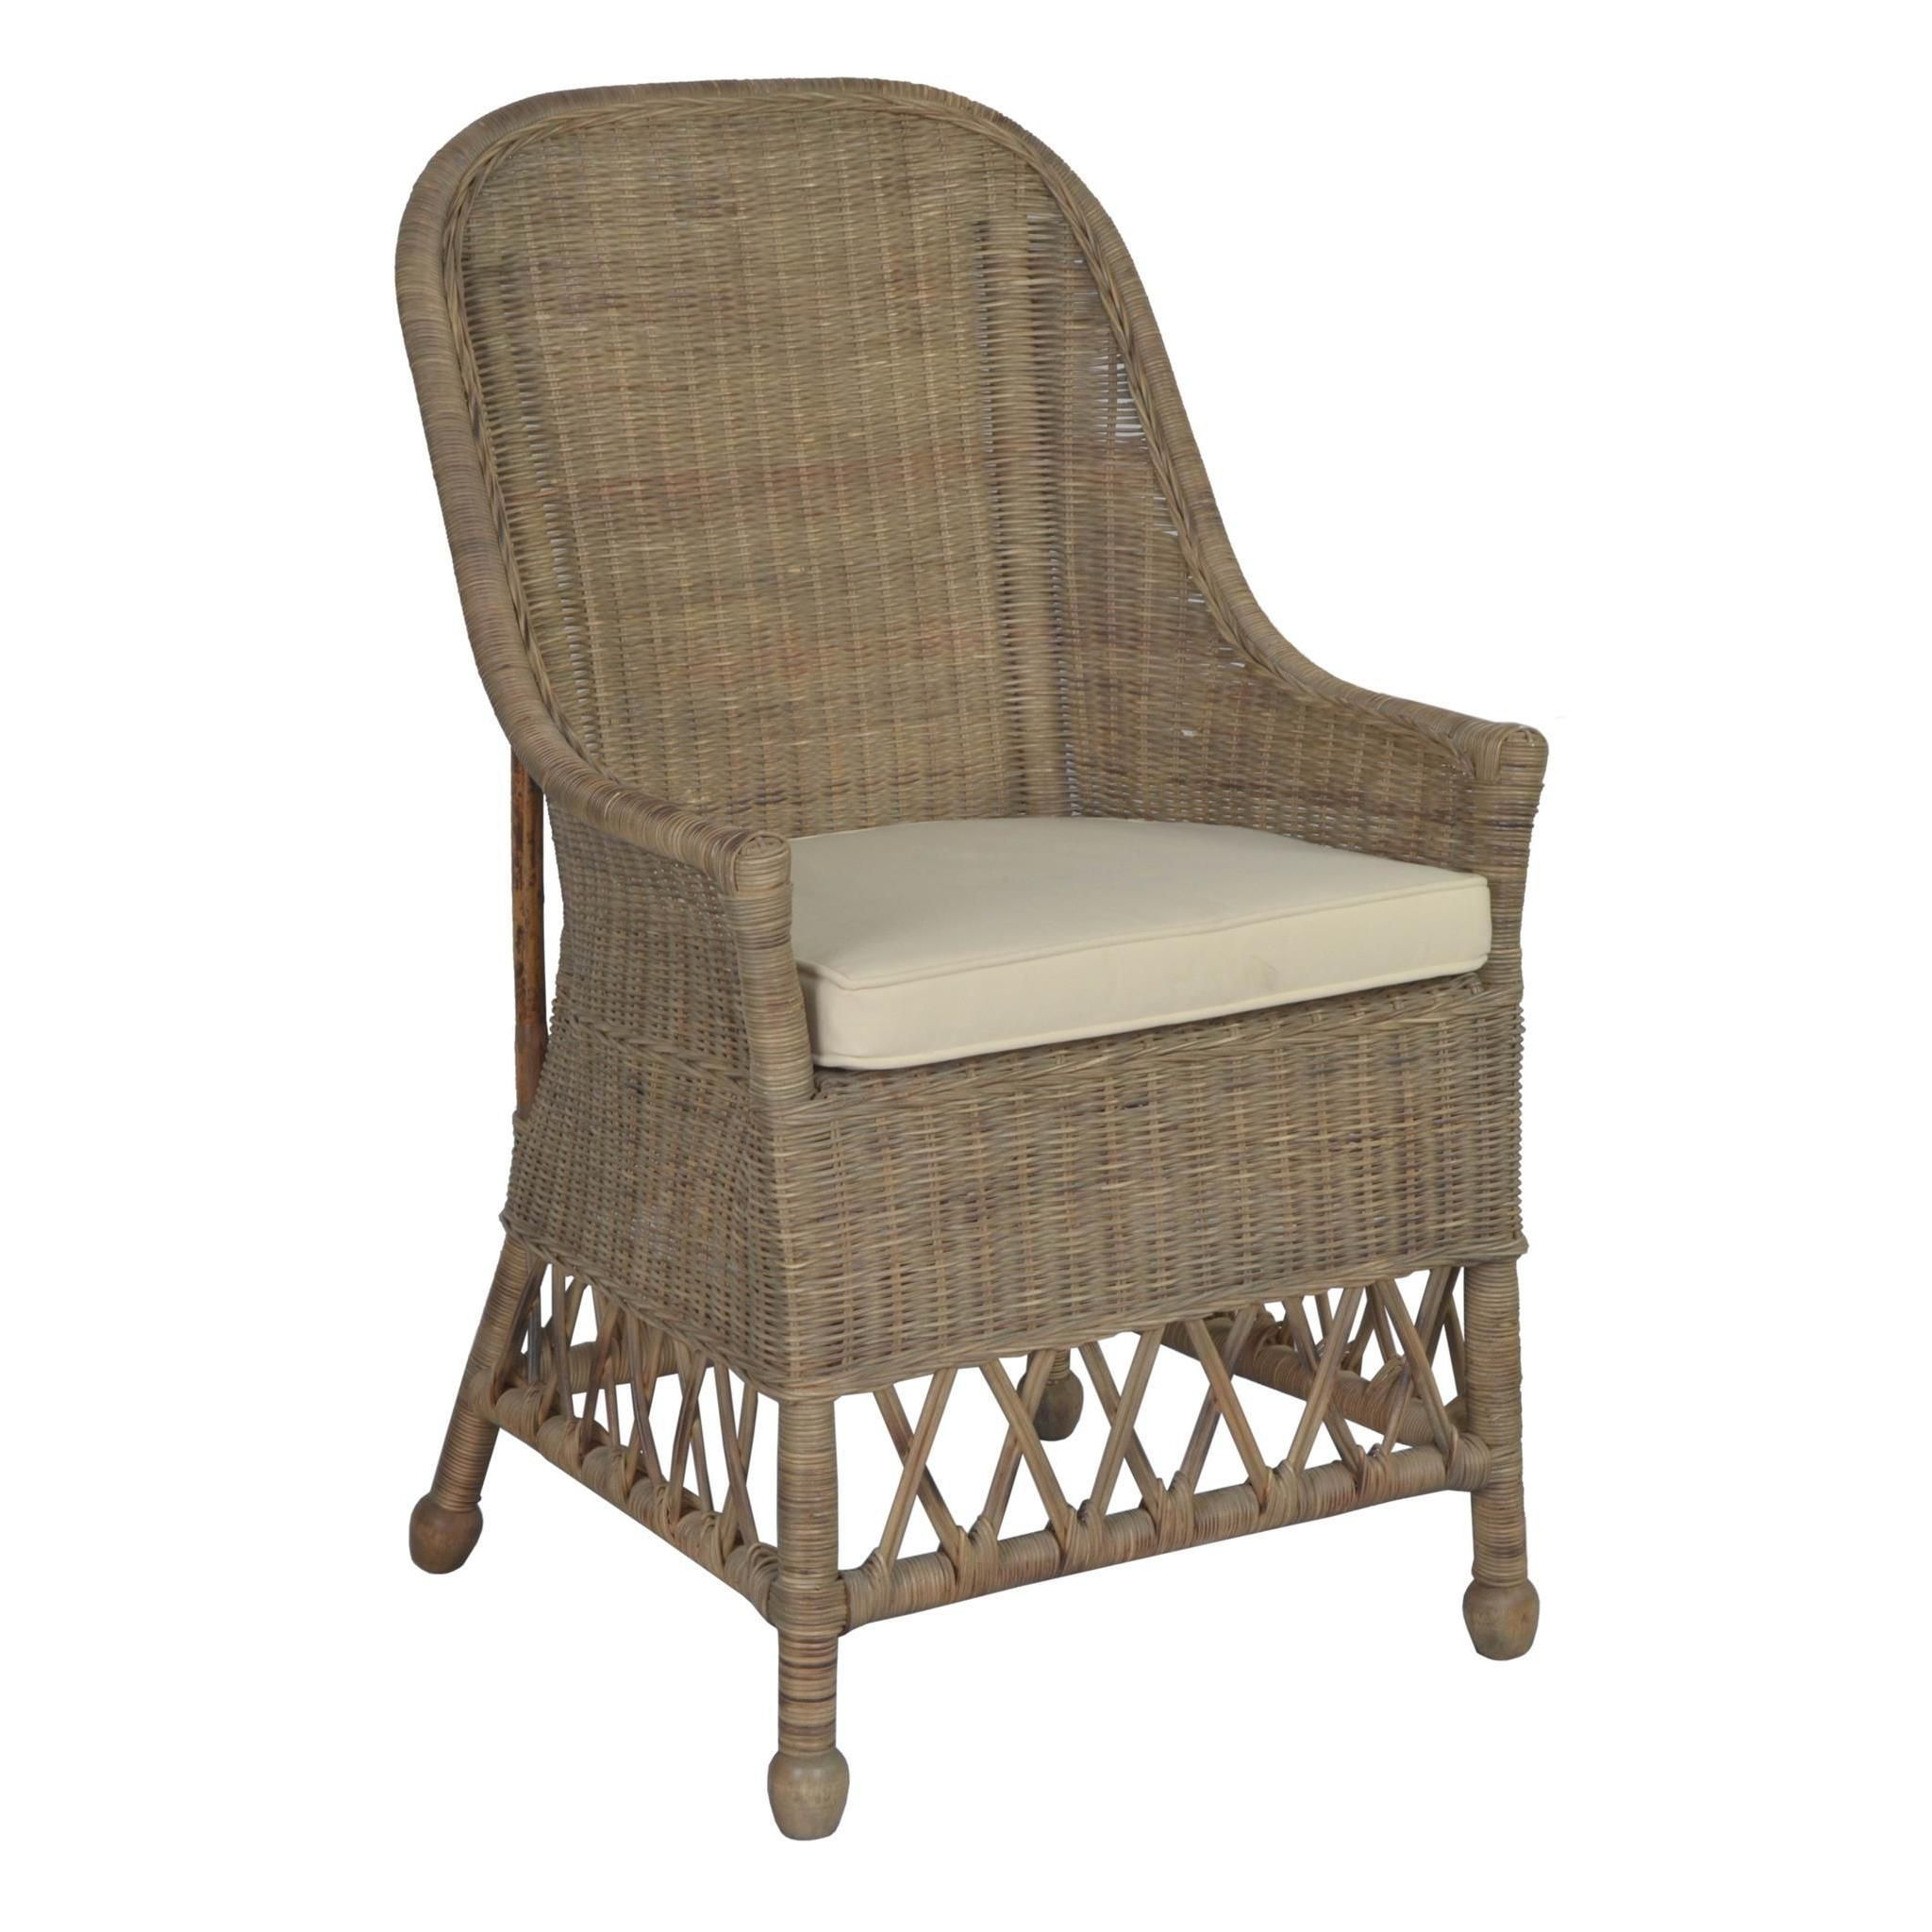 Crafted Home Ruston Casual Grey Textured Chair Brown Rattan. Queen Anne Style Living Room Furniture. Living Room Furniture Sets Victoria Living Room Set 50068. Models On